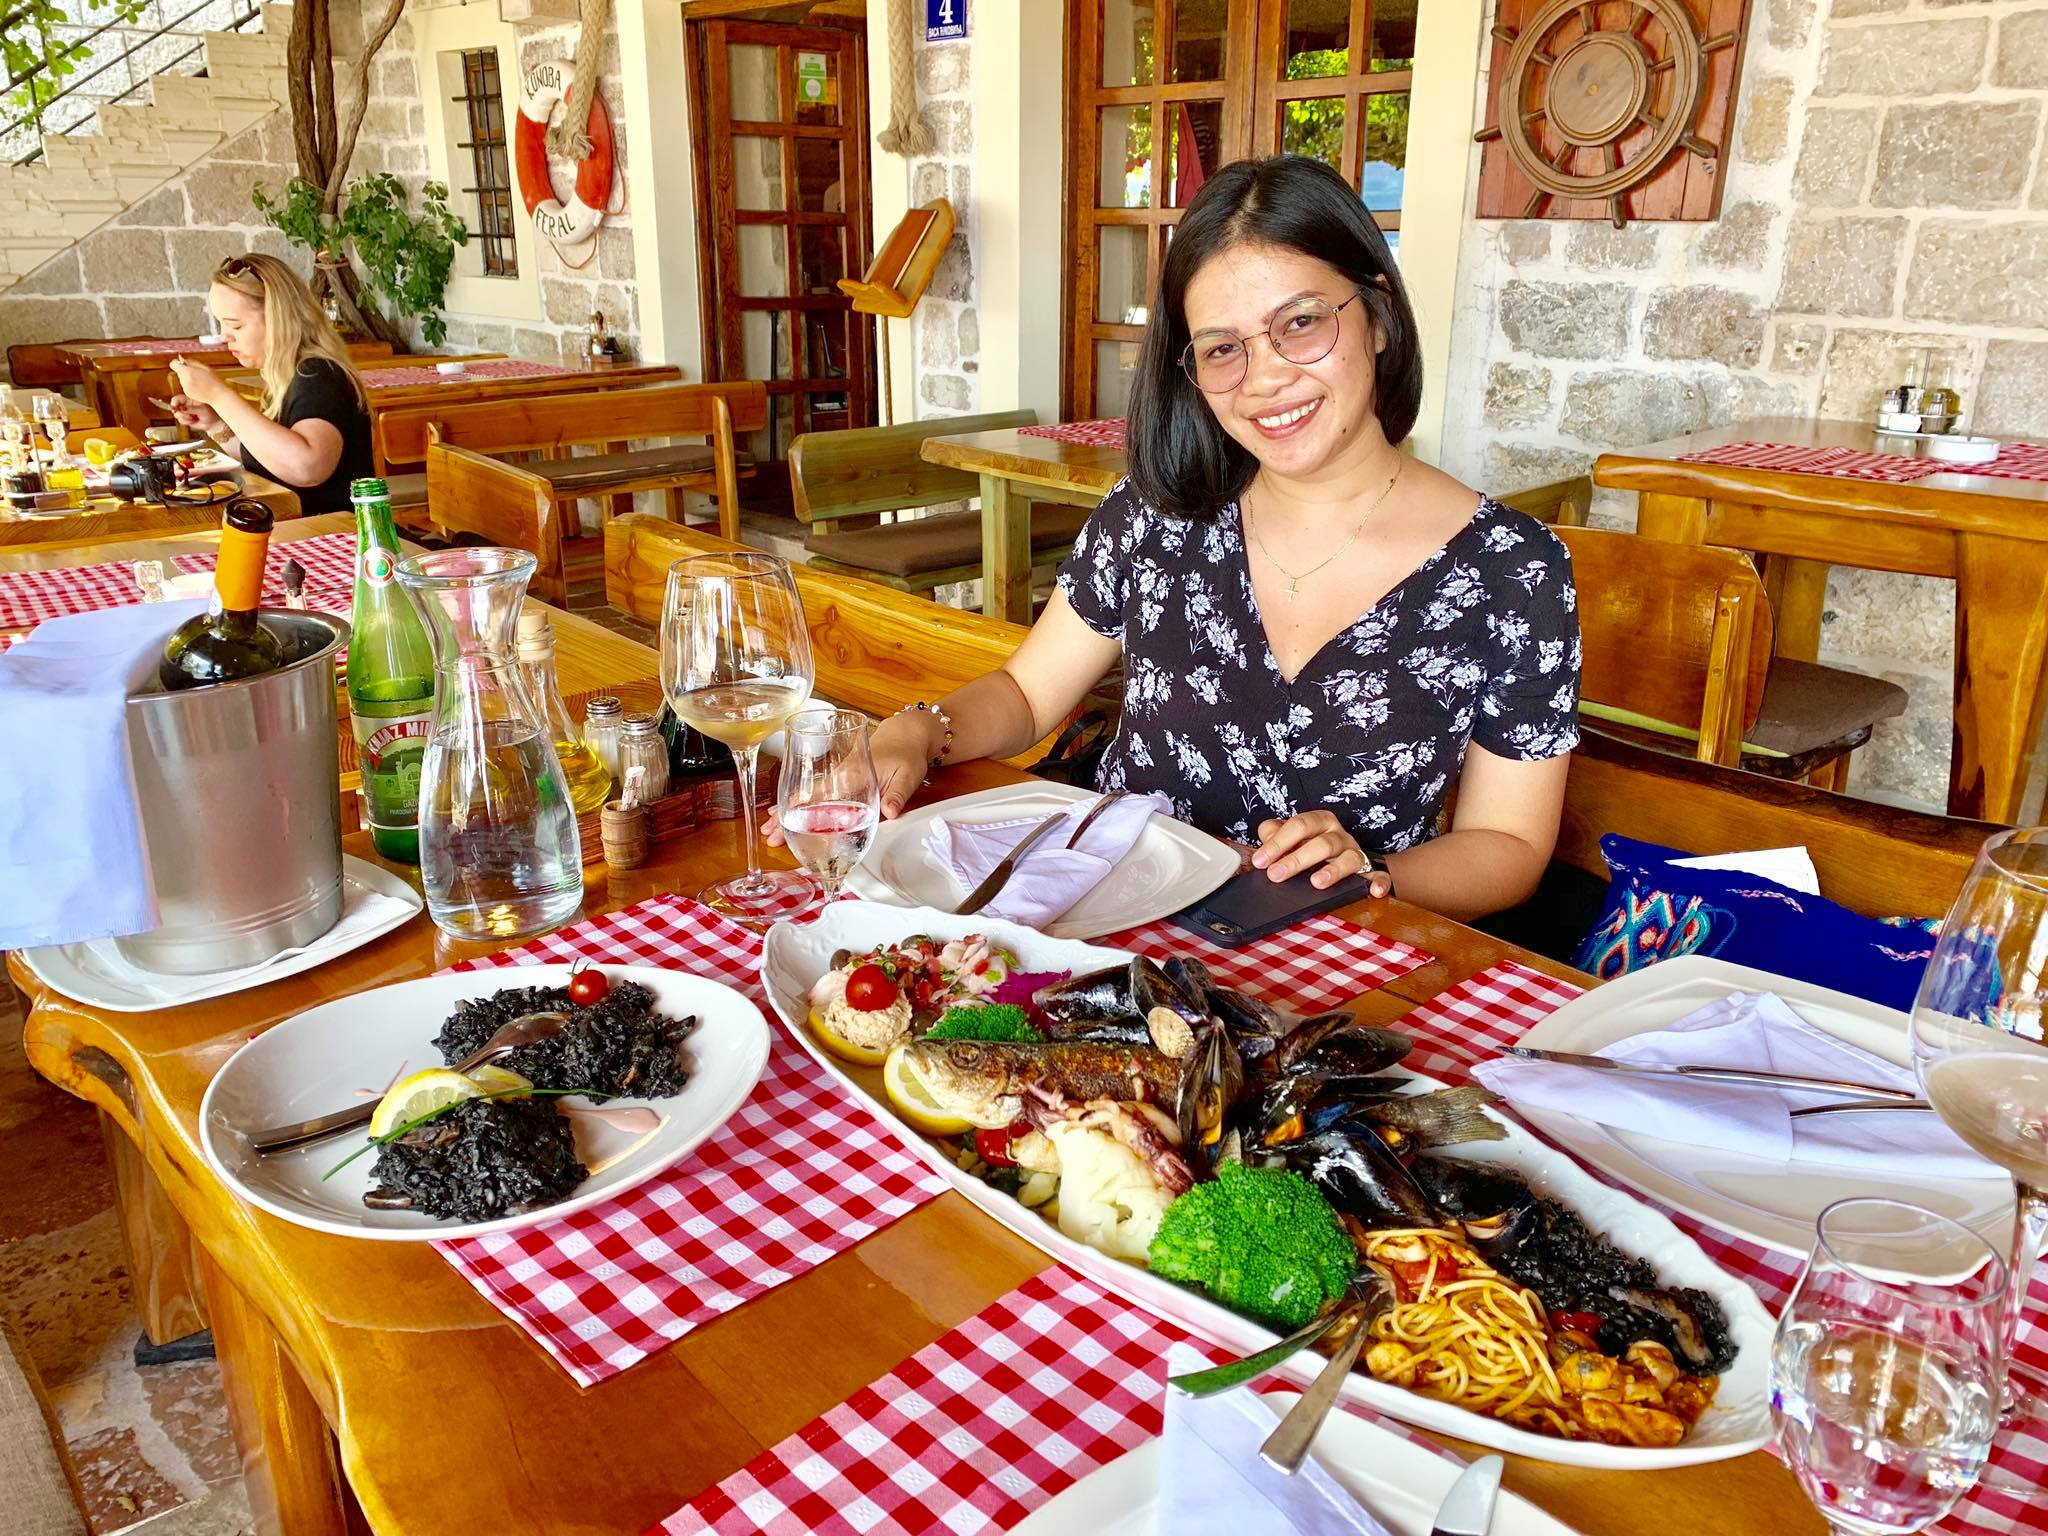 Expat Life in Montenegro Day 3 We have our first visitor already in our new home here in Herceg Novi22.jpg